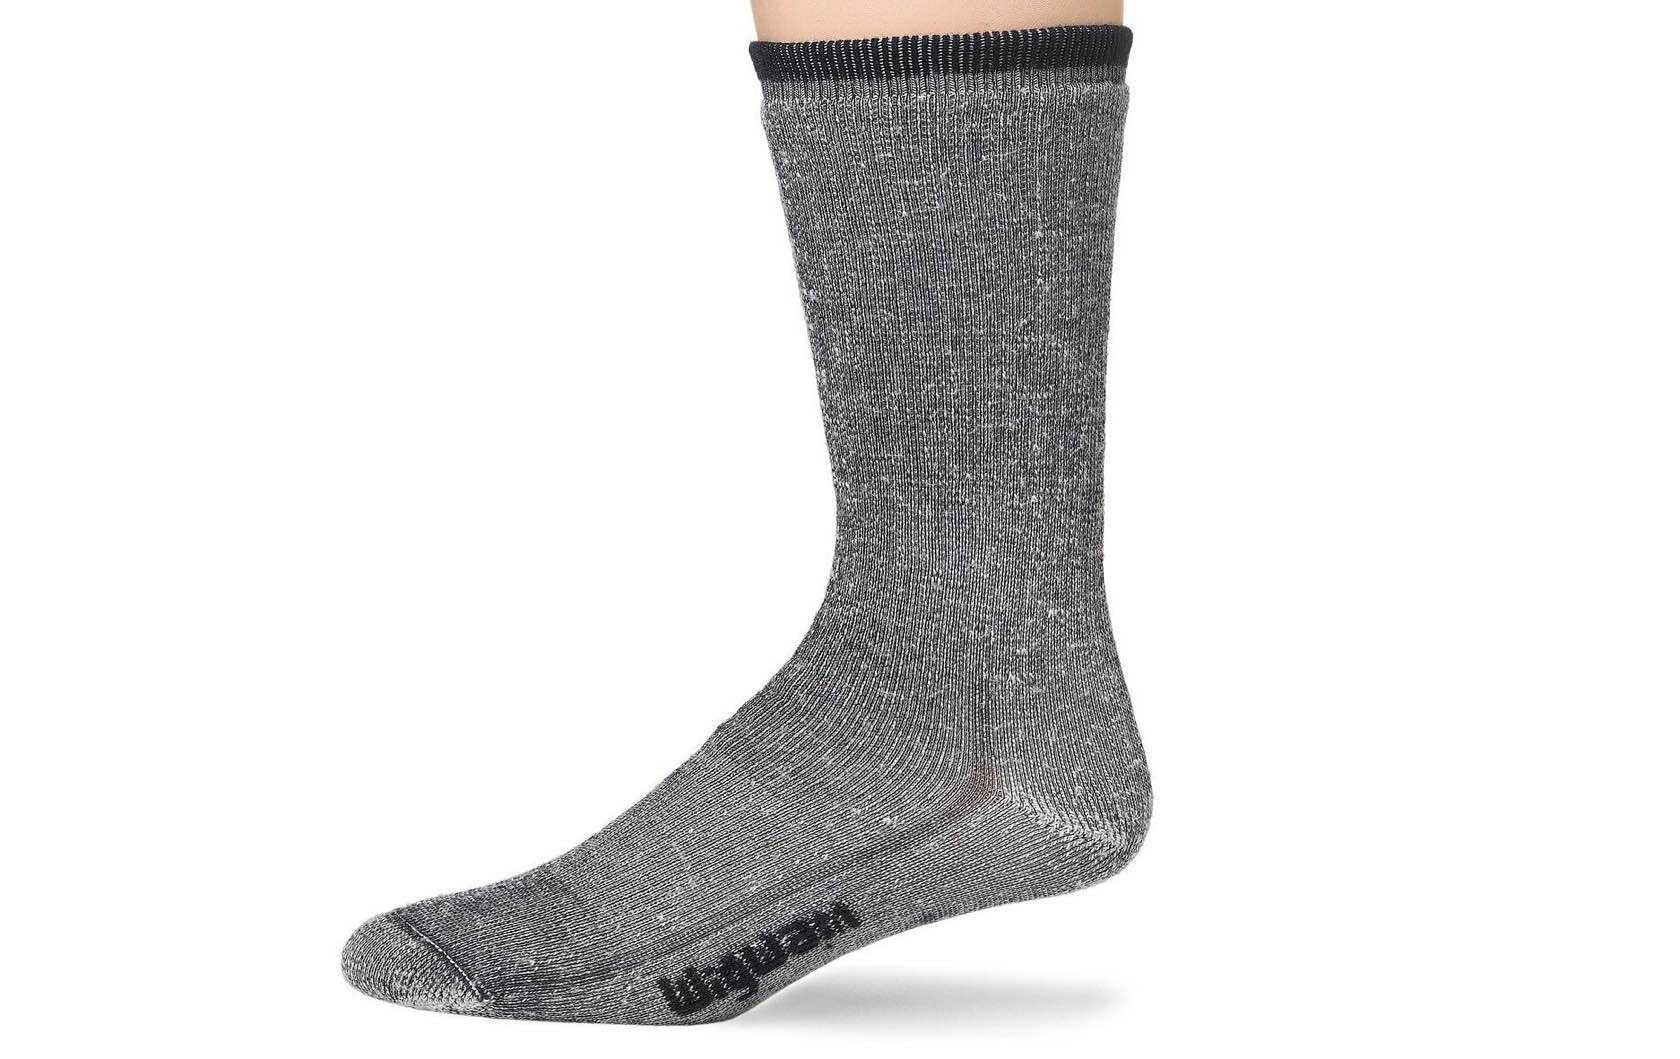 Wigwam's merino wool hiker socks. (Prices vary with color and size, but most pairs run about $10–$12 a pop)